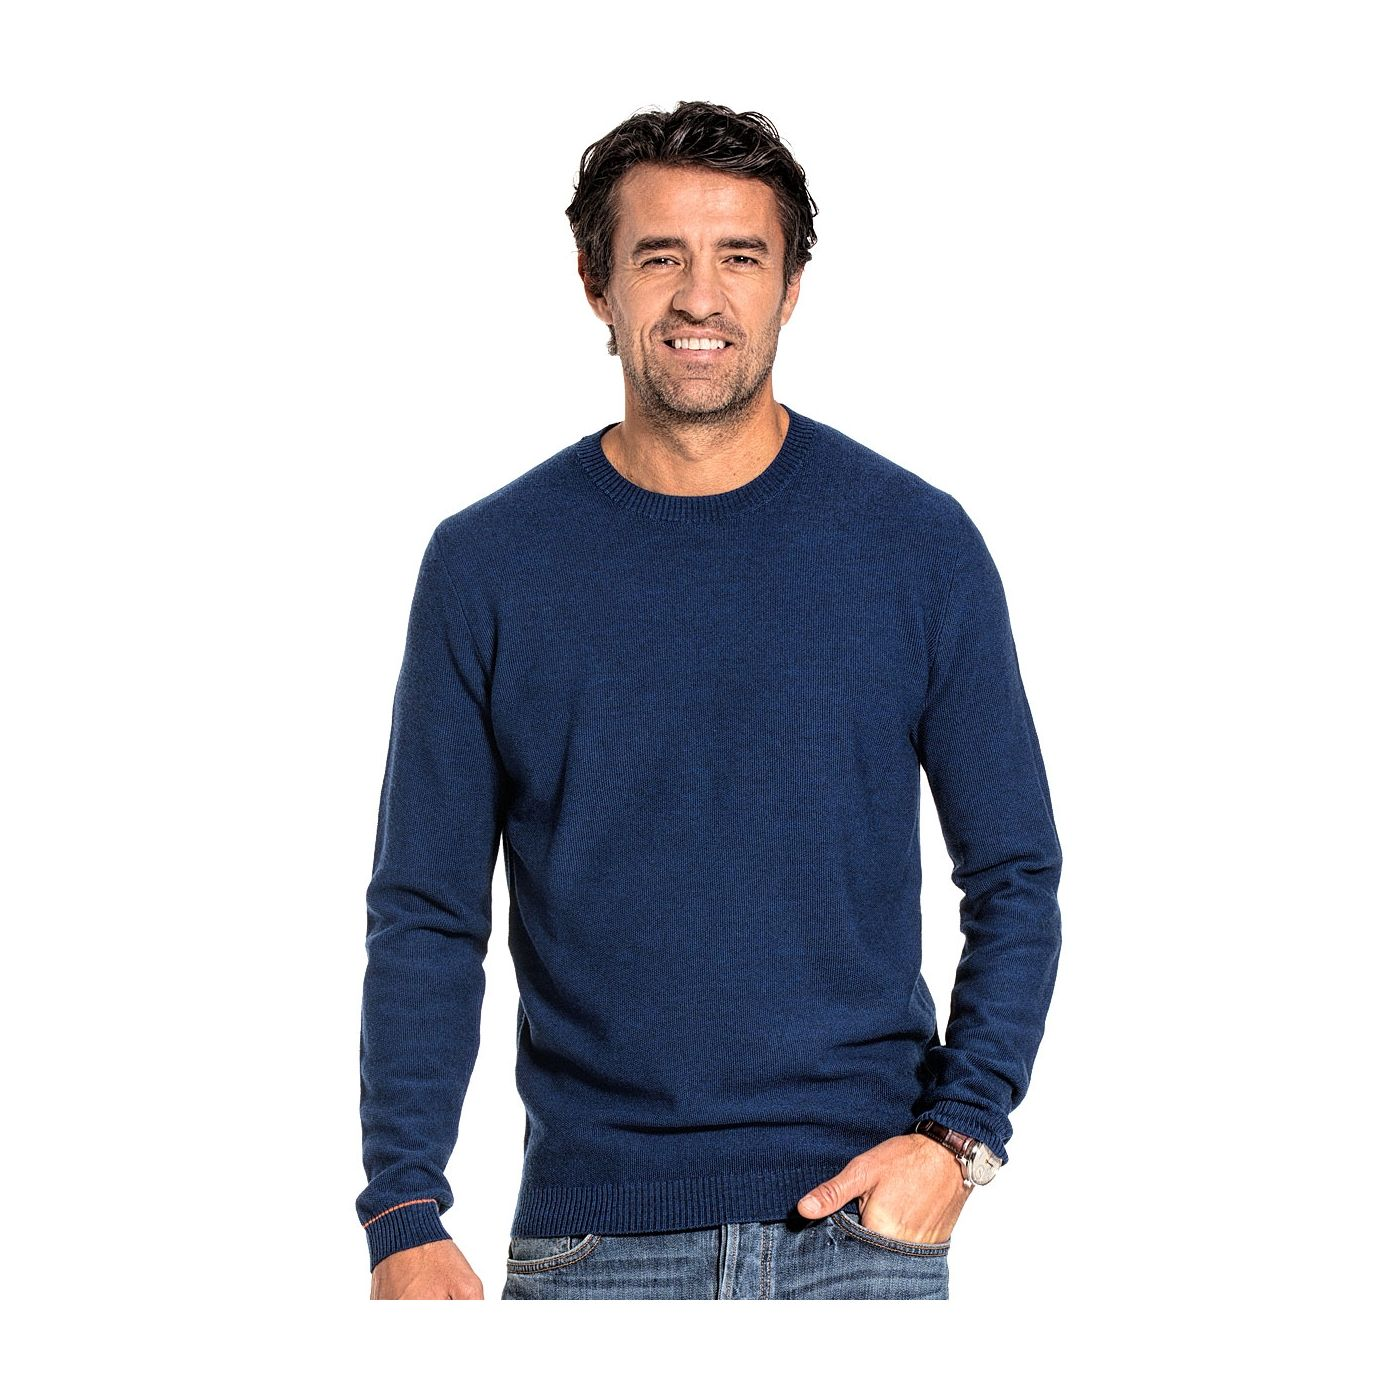 Honeycomb knit sweater for men made of Merino wool in Blue